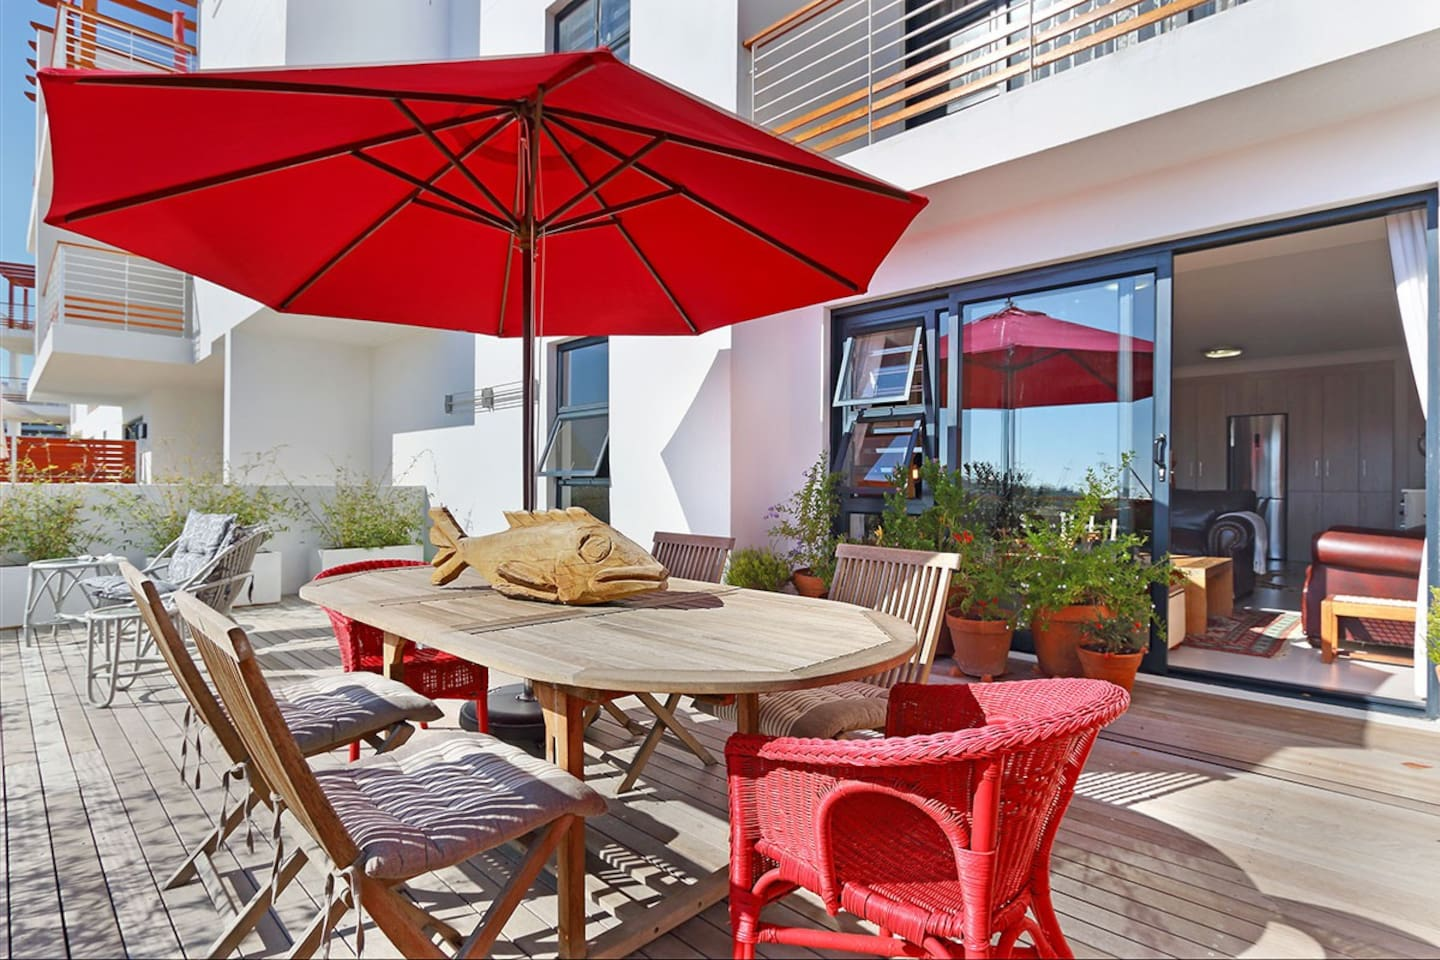 A holidaymaker's paradise. A large, open plan entertainment area that gets African sunshine all day. The perfect spot to relax and enjoy a Cape Town sunset.